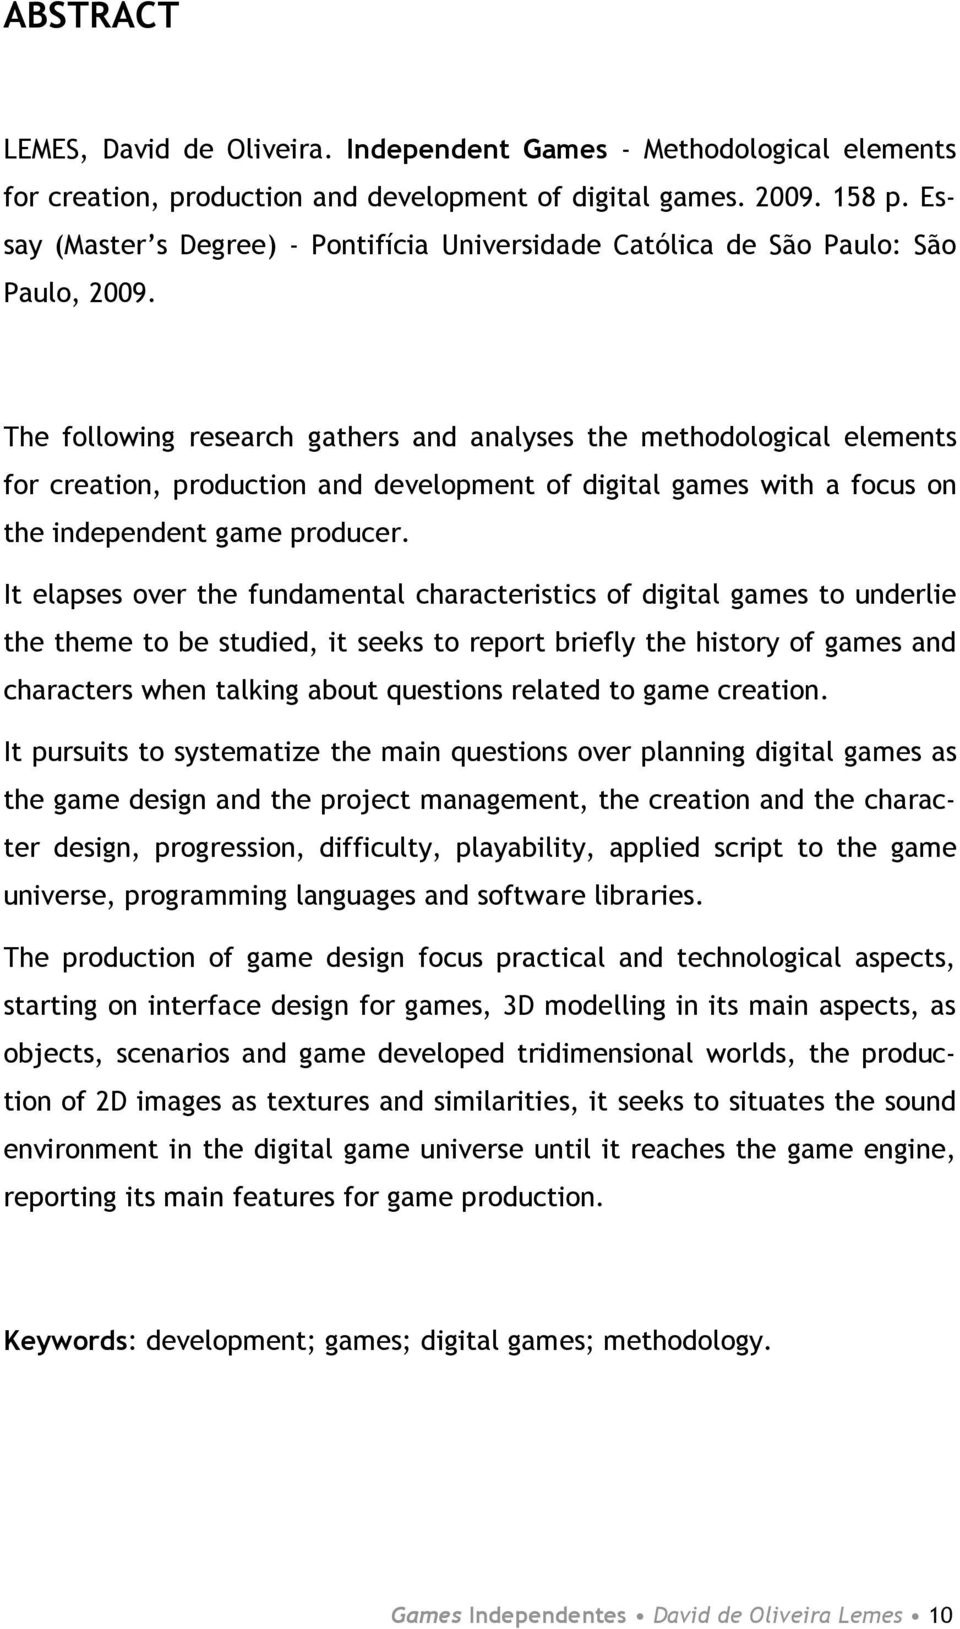 The following research gathers and analyses the methodological elements for creation, production and development of digital games with a focus on the independent game producer.